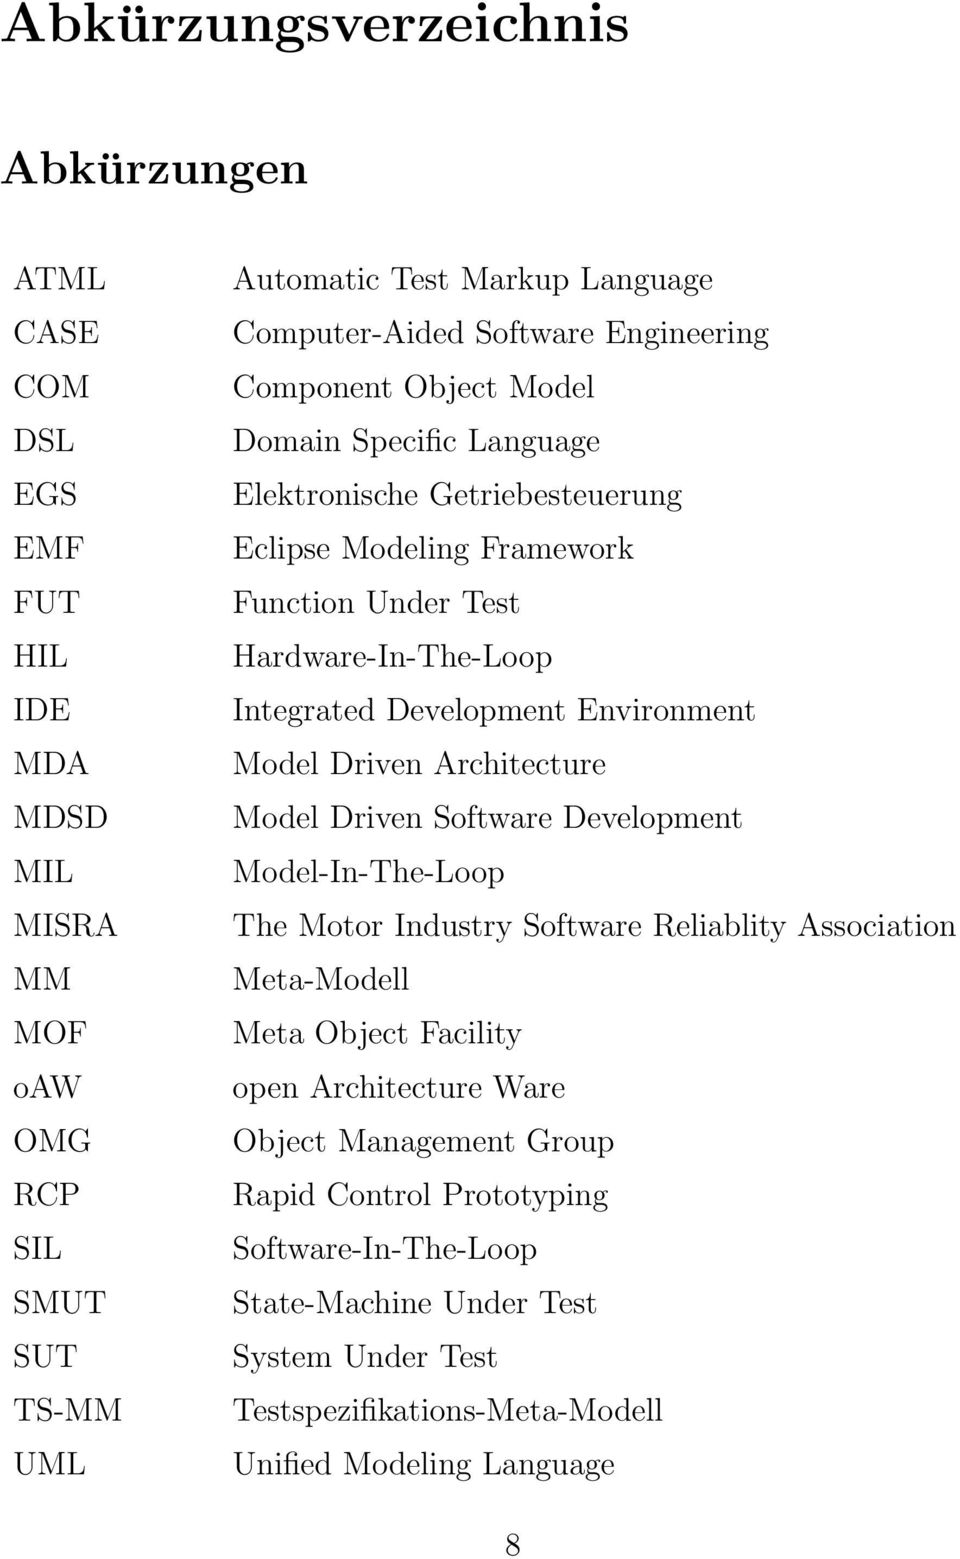 Development Environment Model Driven Architecture Model Driven Software Development Model-In-The-Loop The Motor Industry Software Reliablity Association Meta-Modell Meta Object